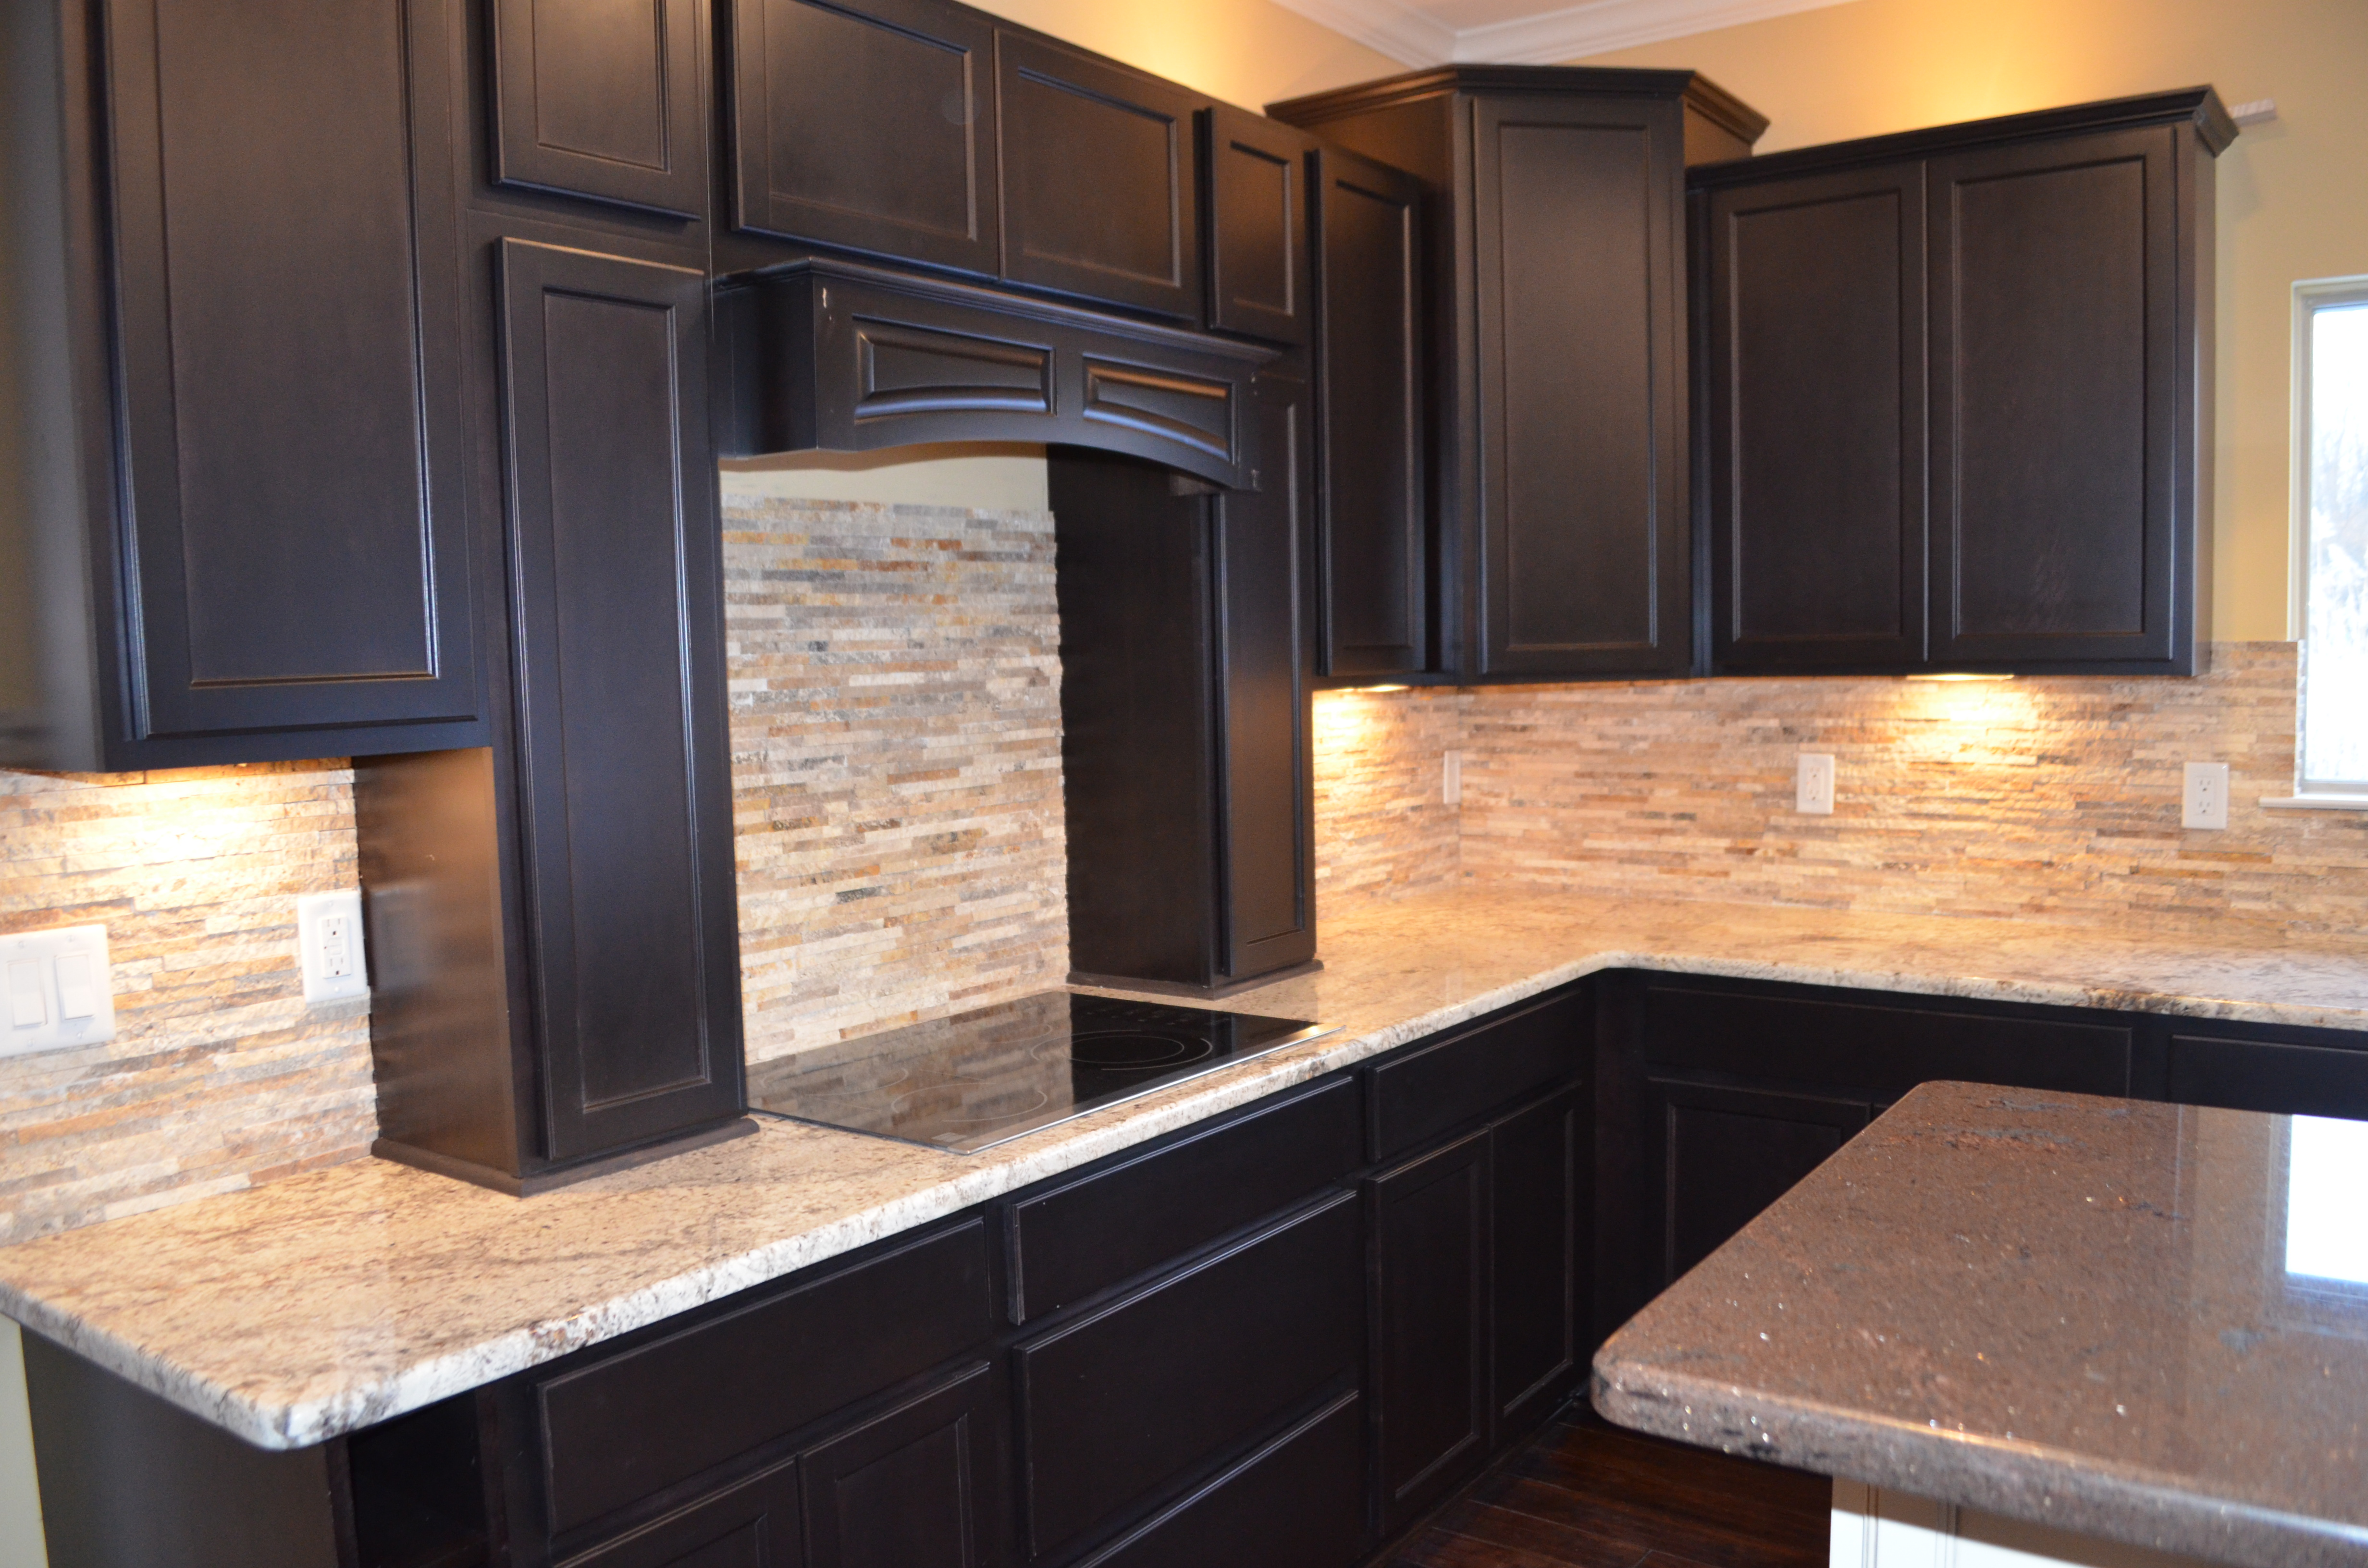 New Homes For Sale, Grand River KBS